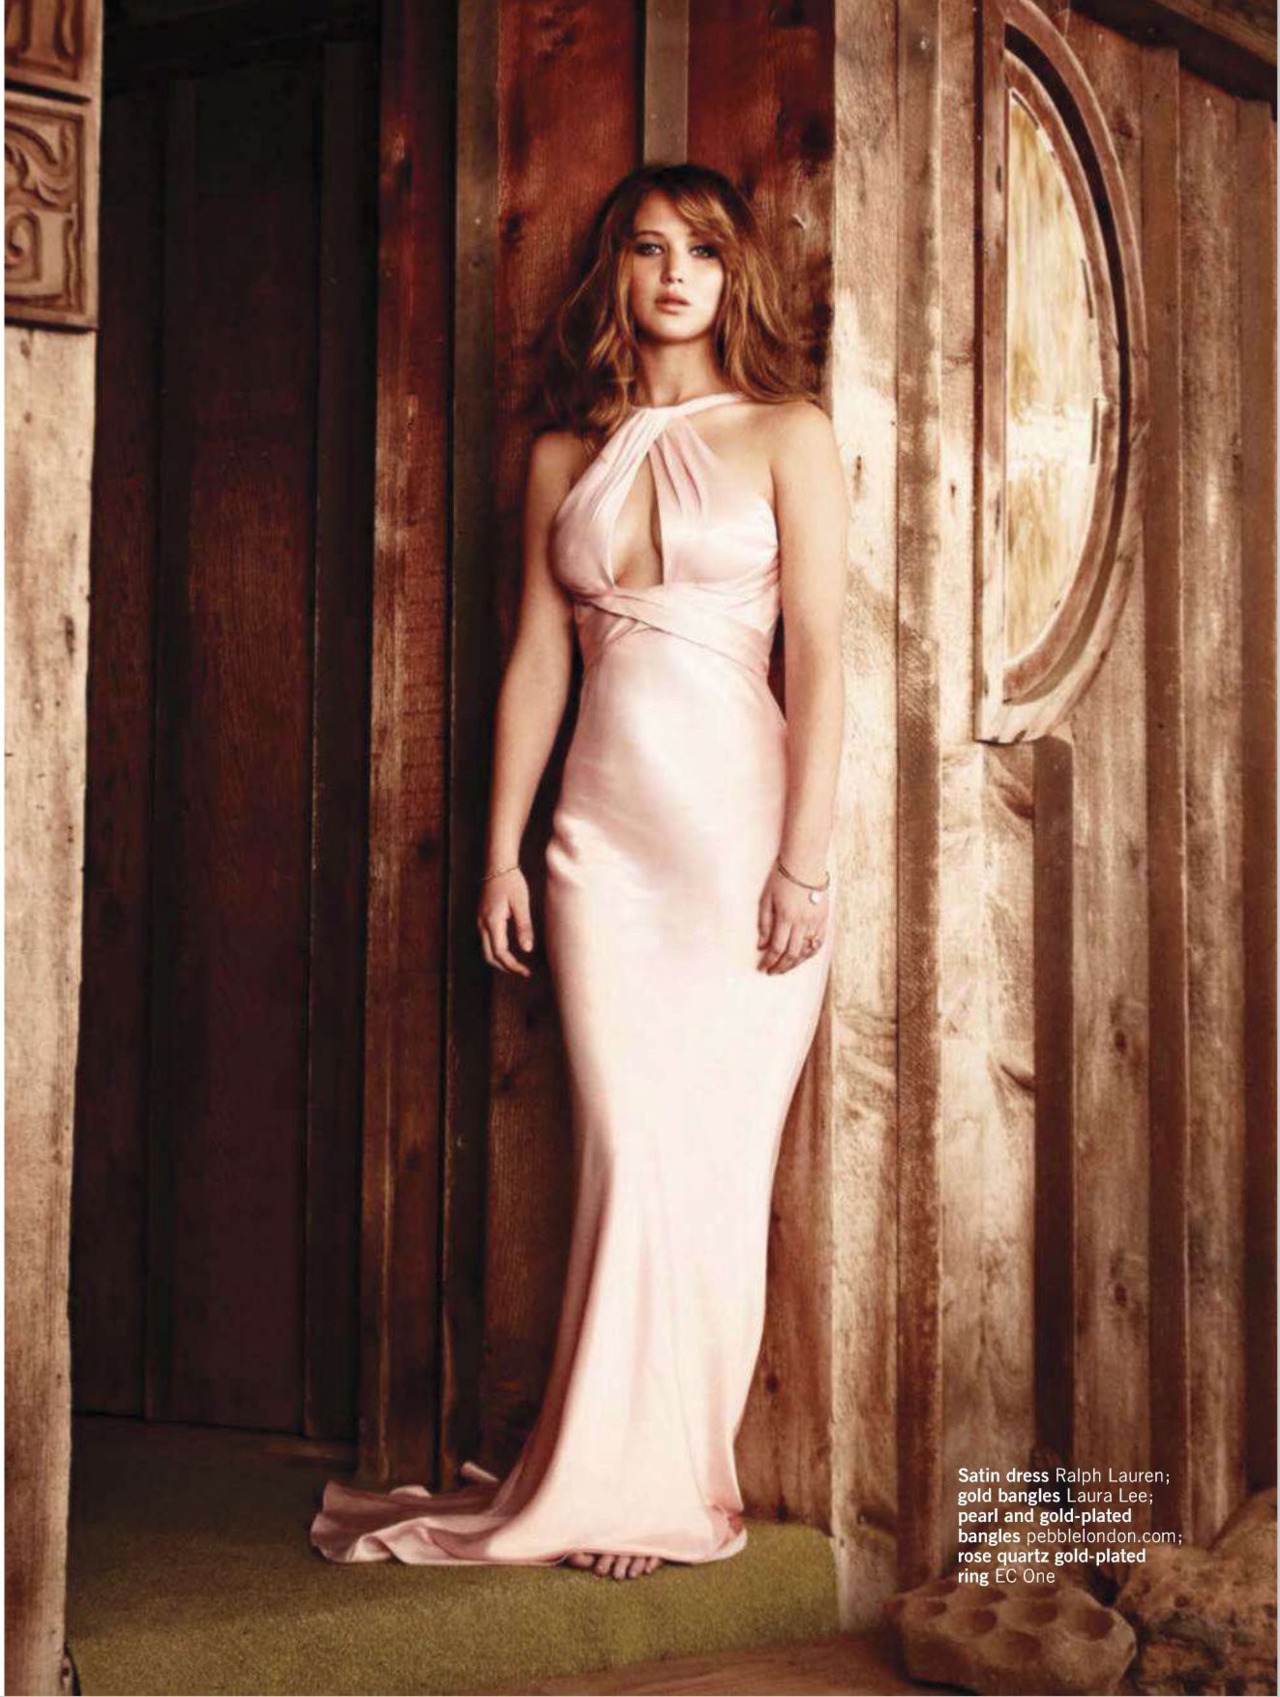 bohemea:  Jennifer Lawrence - Glamour UK by Simon Emmett, April 2012  GIRL, YOUR BODY BE ROCKING